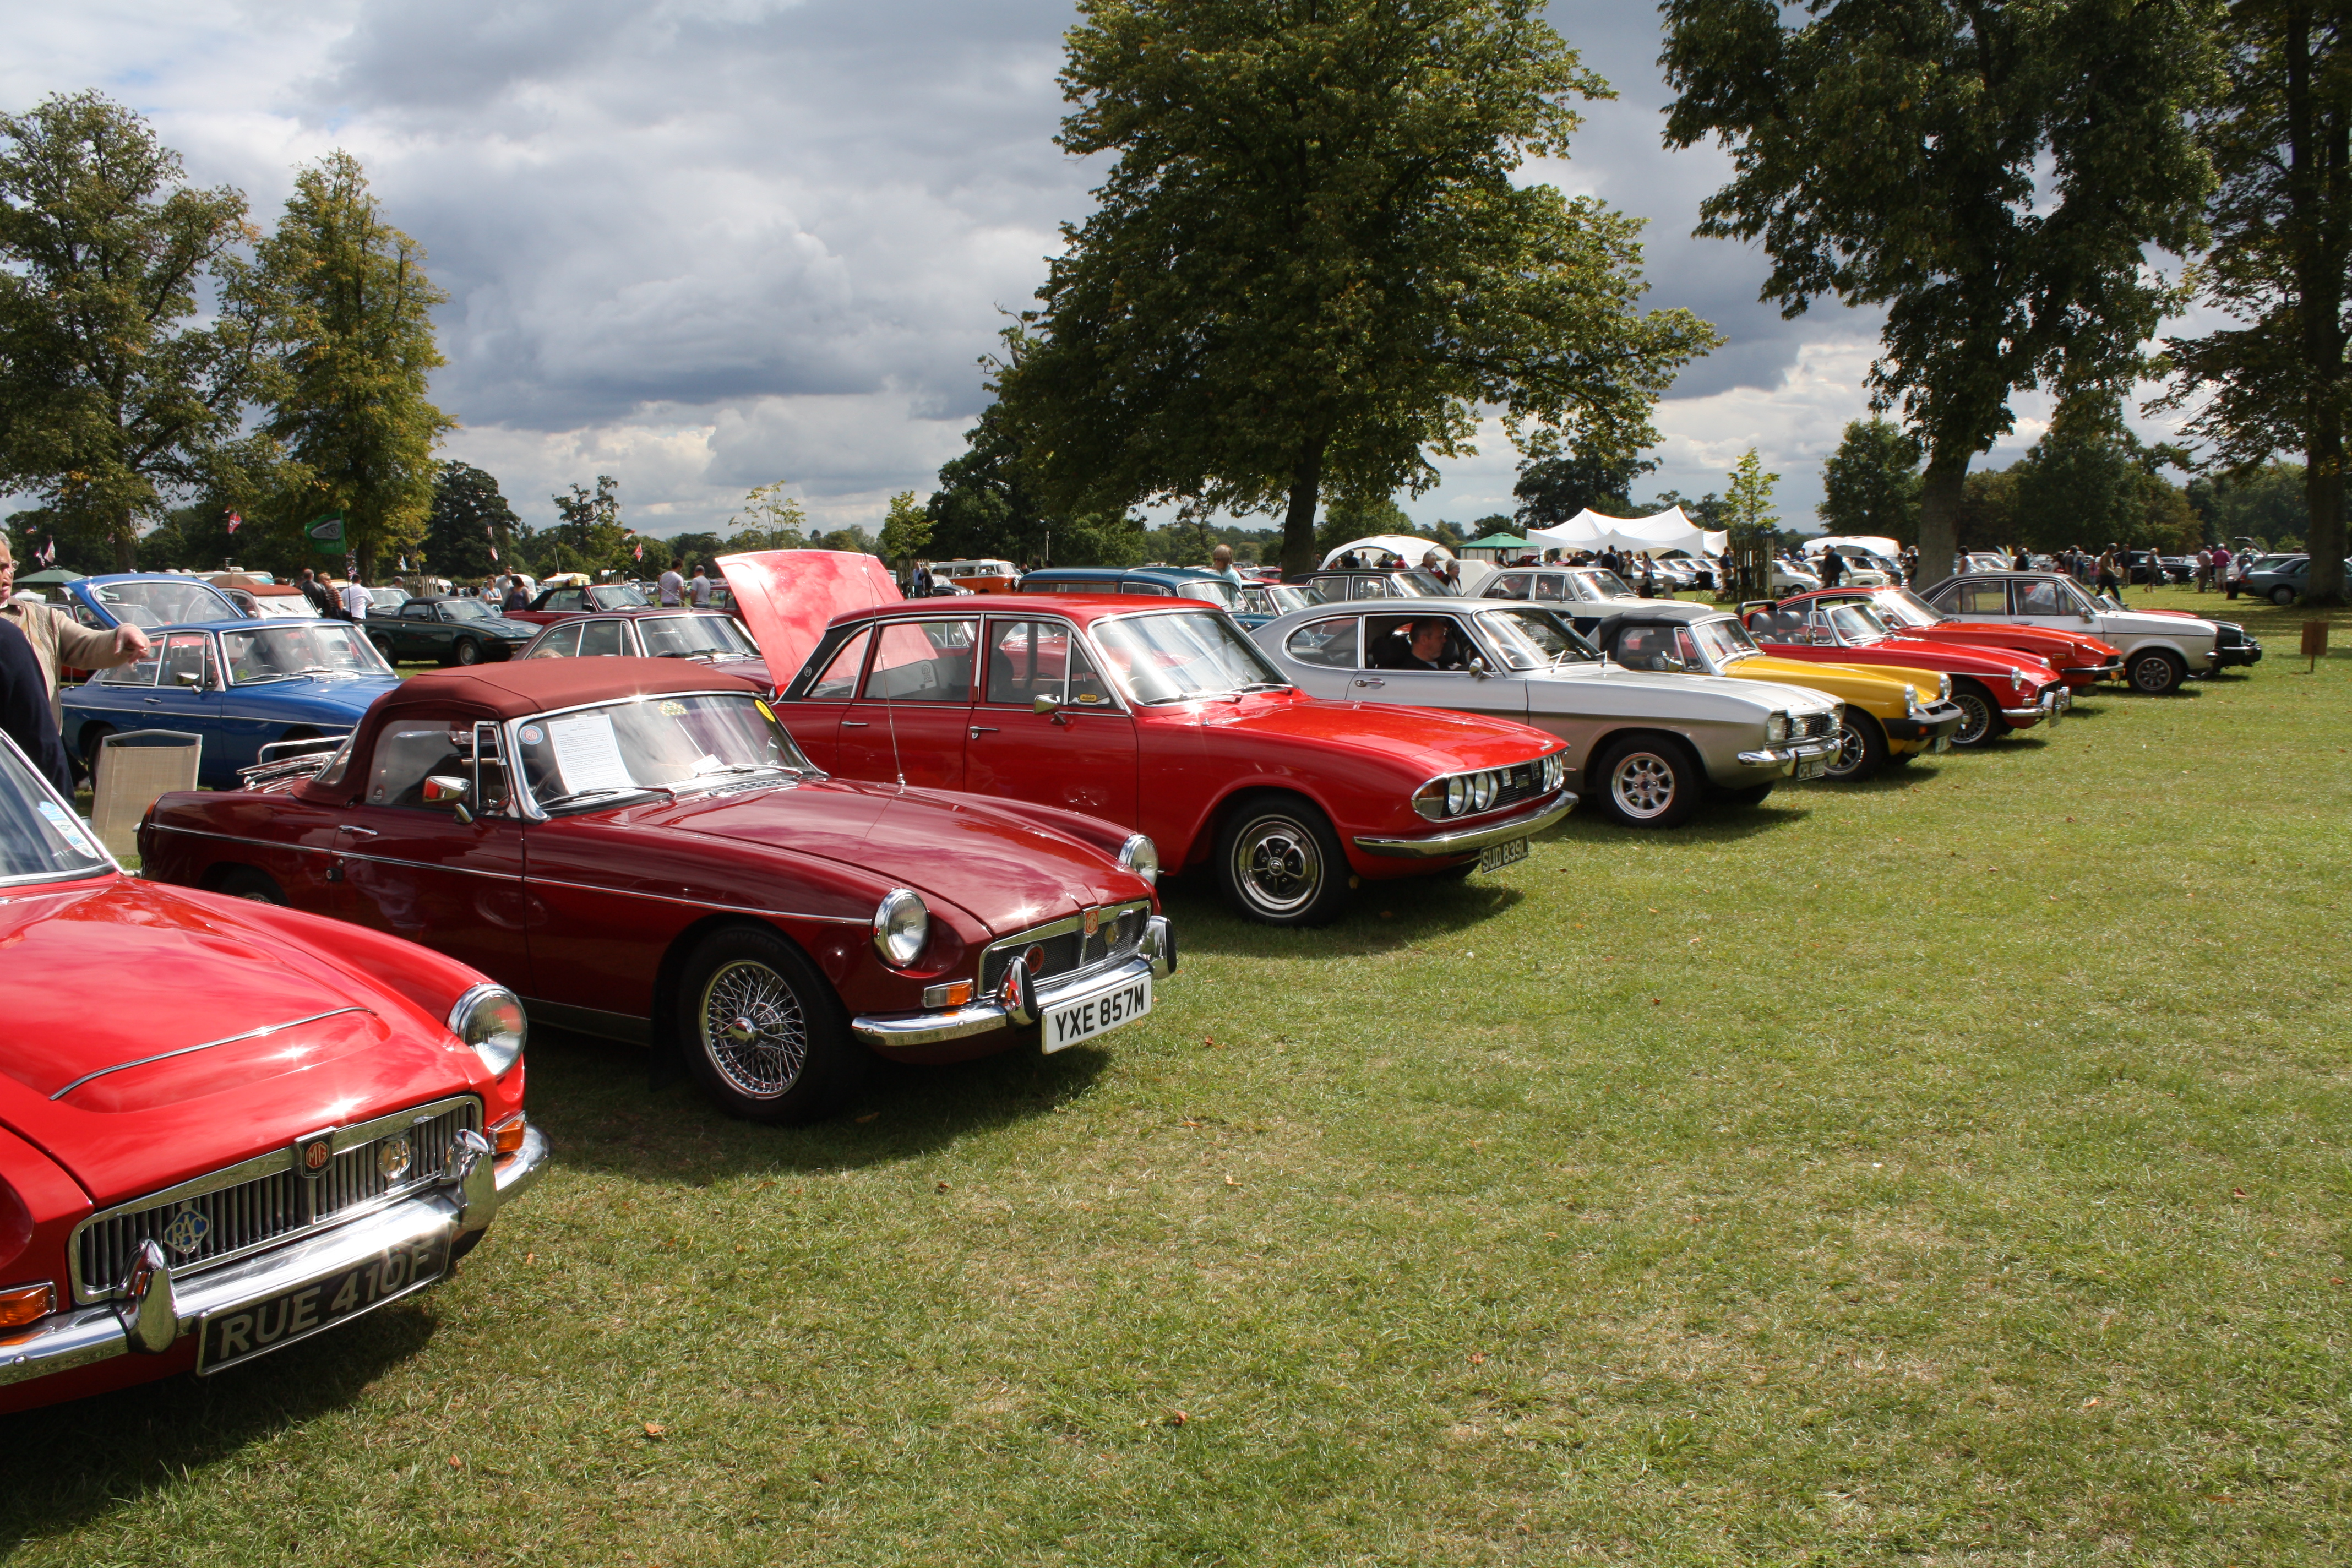 Classic Car Shows: Celtic Mowers Announces Sponsorship Of The Swansea Classic